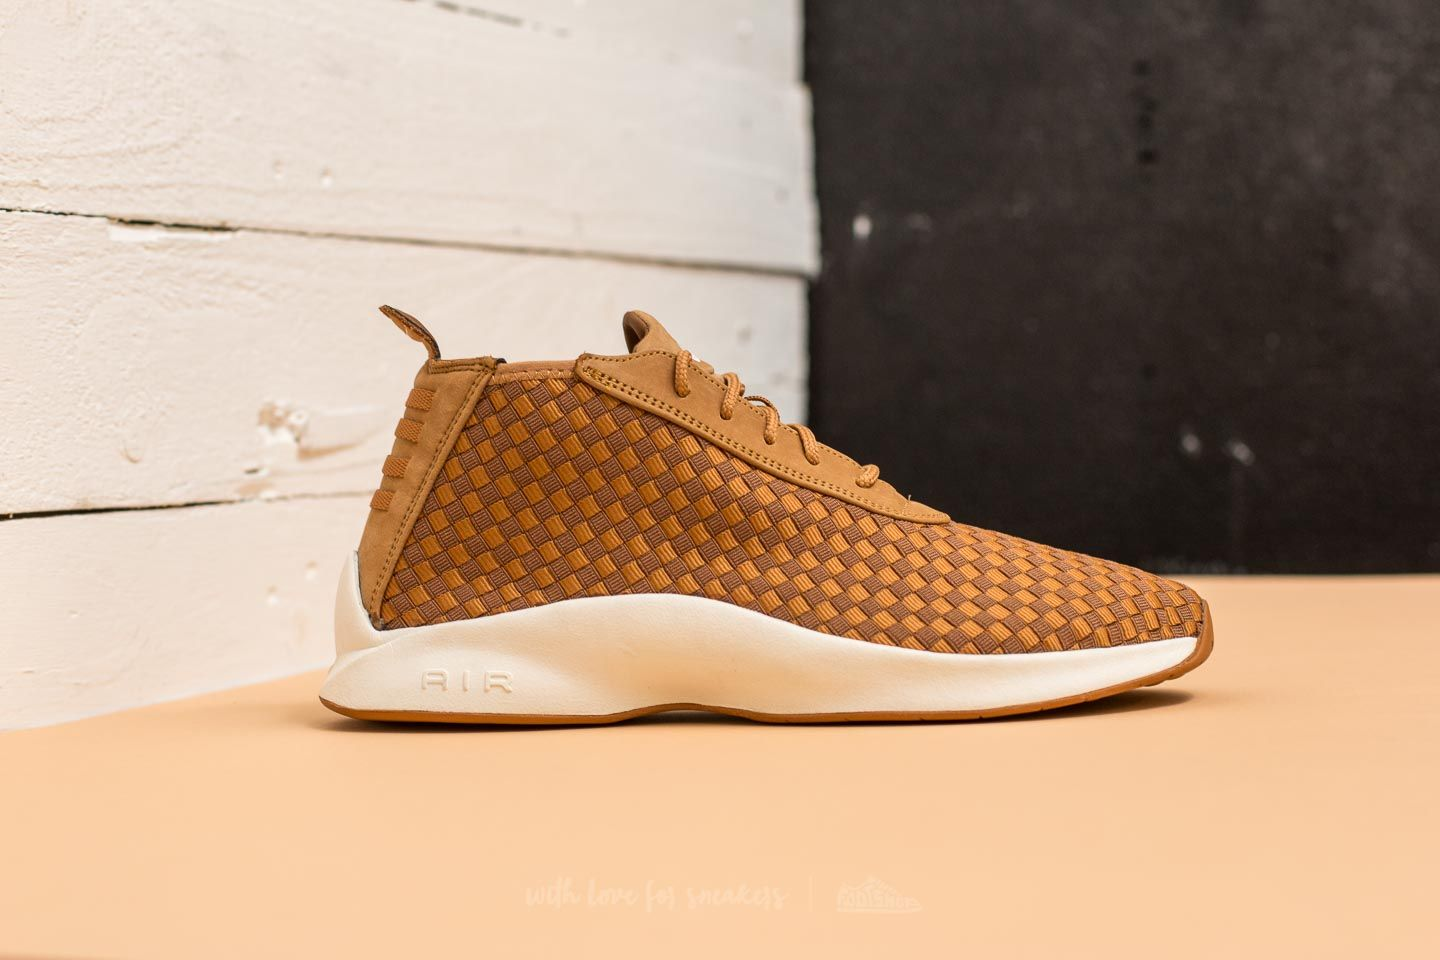 49516fbfbb3 Nike Air Woven Boot Flax  Ale Brown-Sail at a great price 169 €